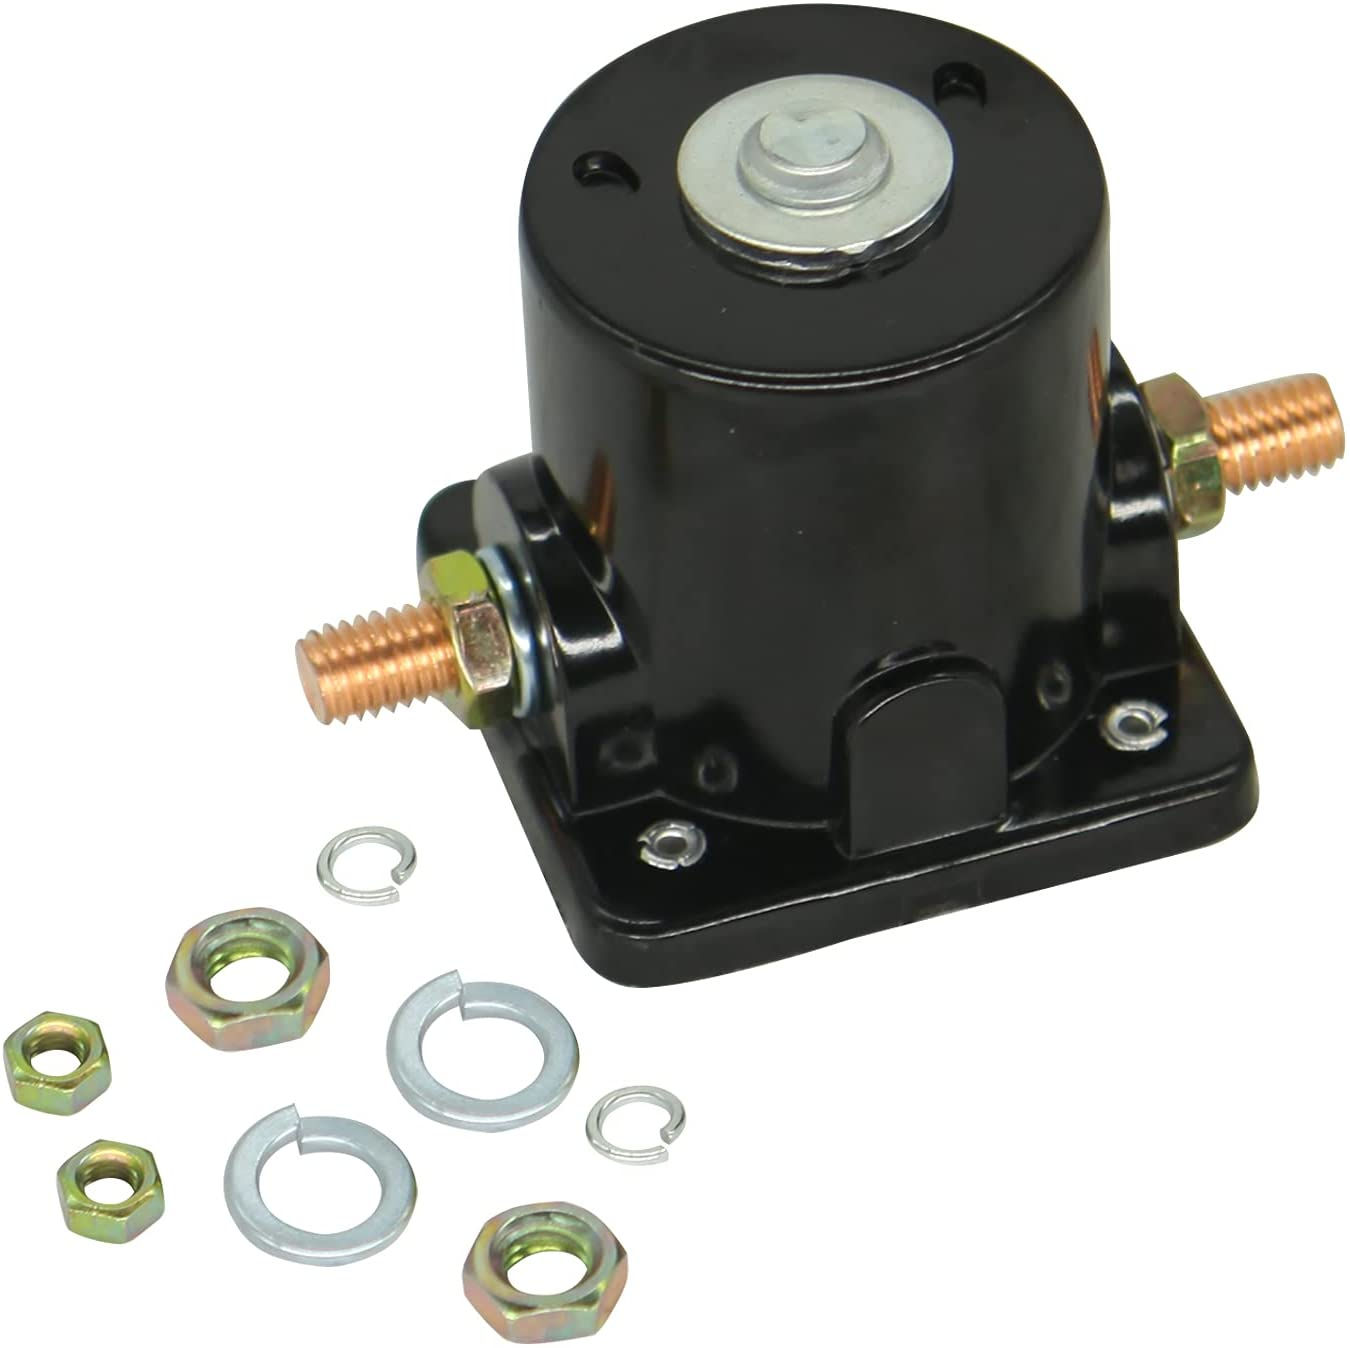 Notonparts 12V Starter Solenoid 383622 389398 Starter Solenoid Relay Switch 380095 389493 For Evinrude 25 25HP 35 35Hp 115 115Hp 140 140HP 185 185HP 1984-1994 Johnson 60 60Hp 1970-1996 70 70HP